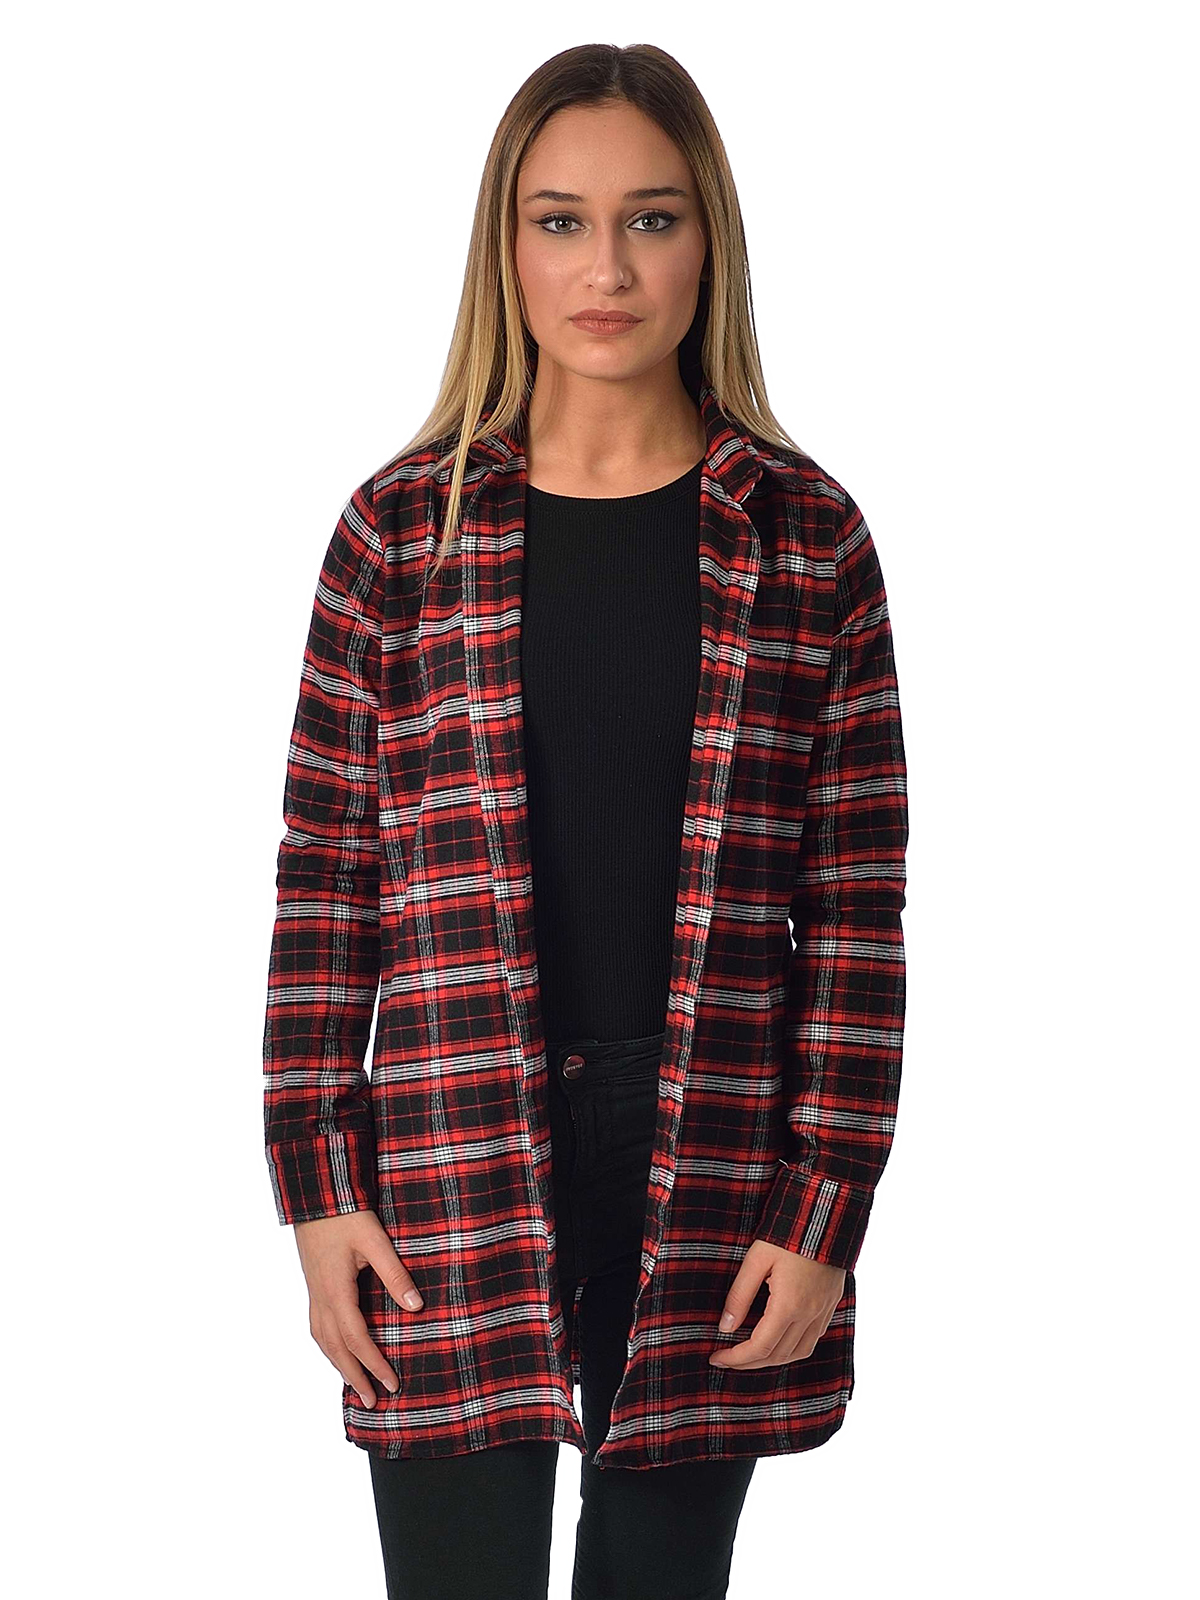 Black pants red shirt women with brilliant picture Womens red tartan plaid shirt